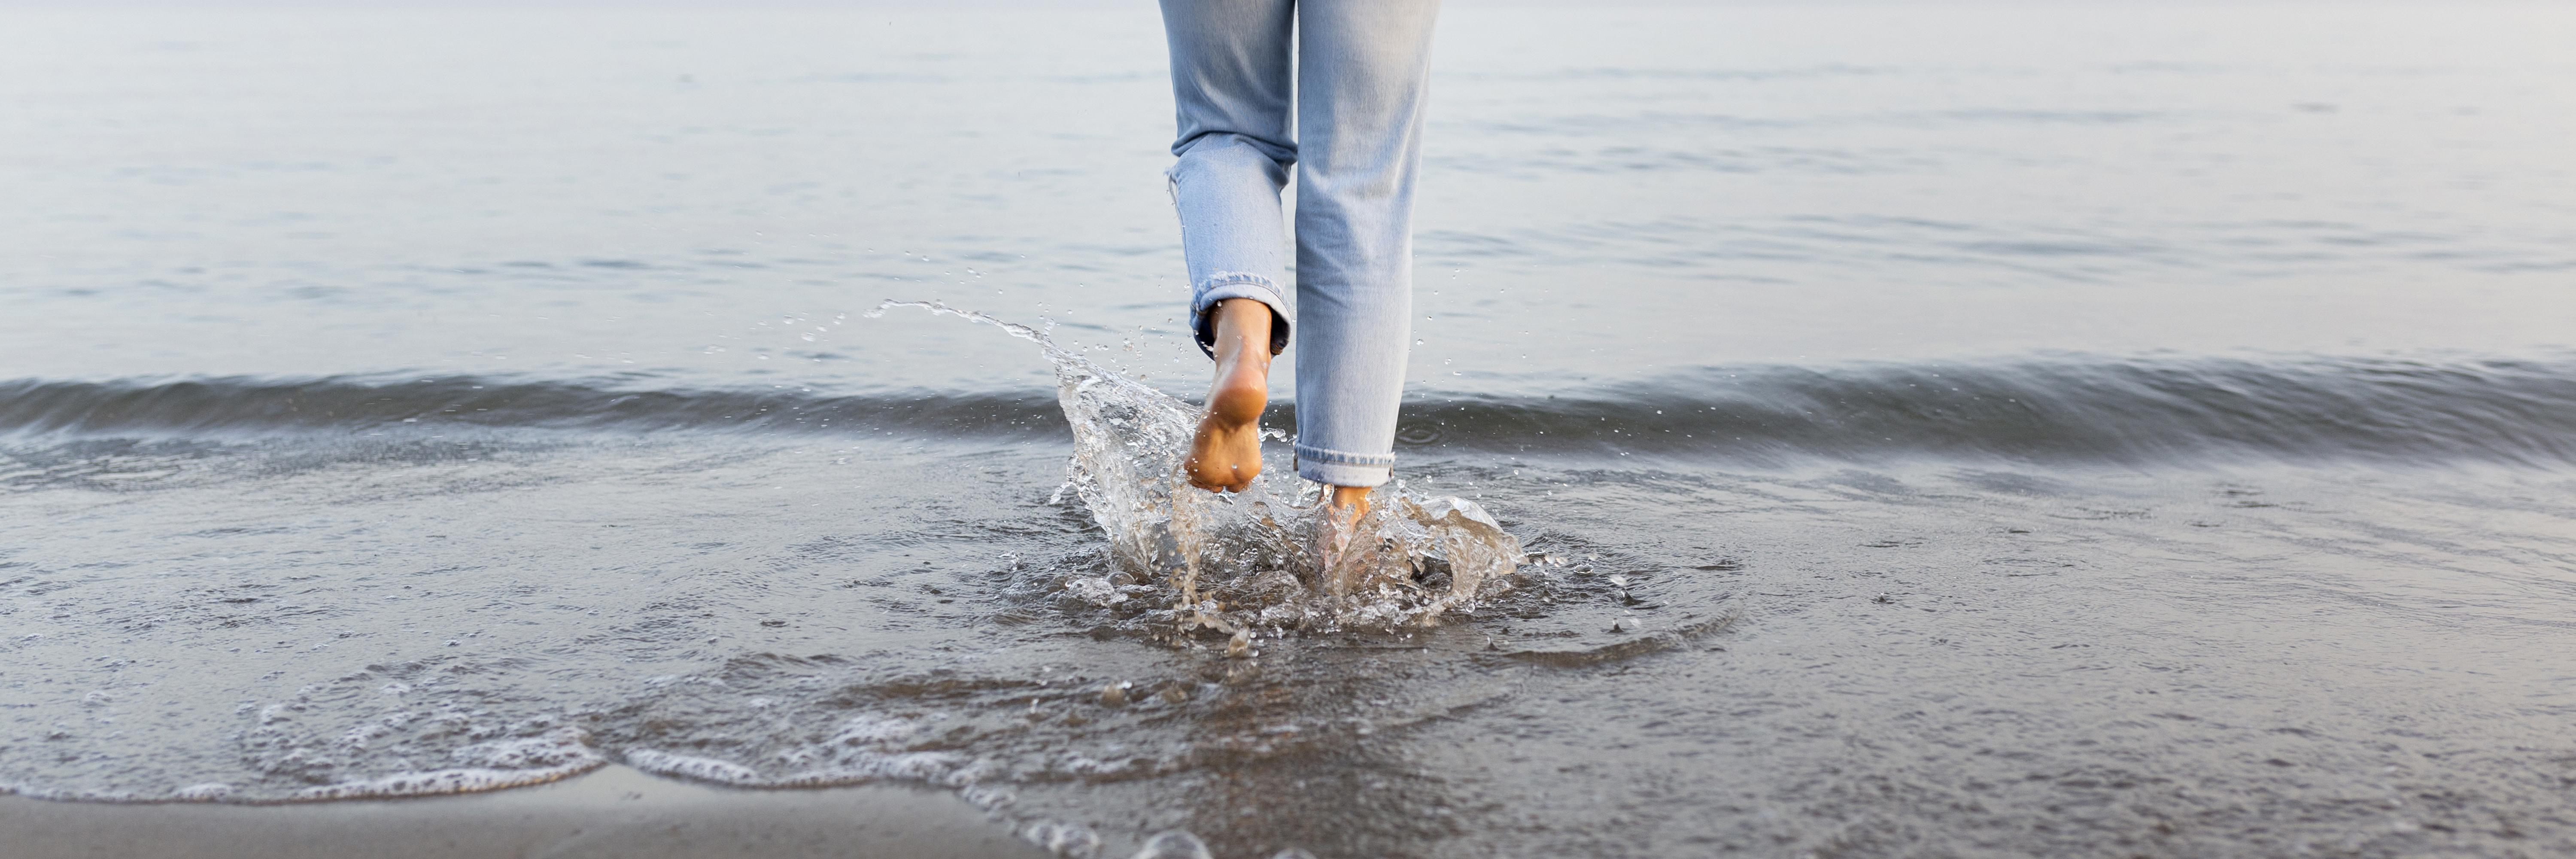 Be curious. Test the water one step at a time.